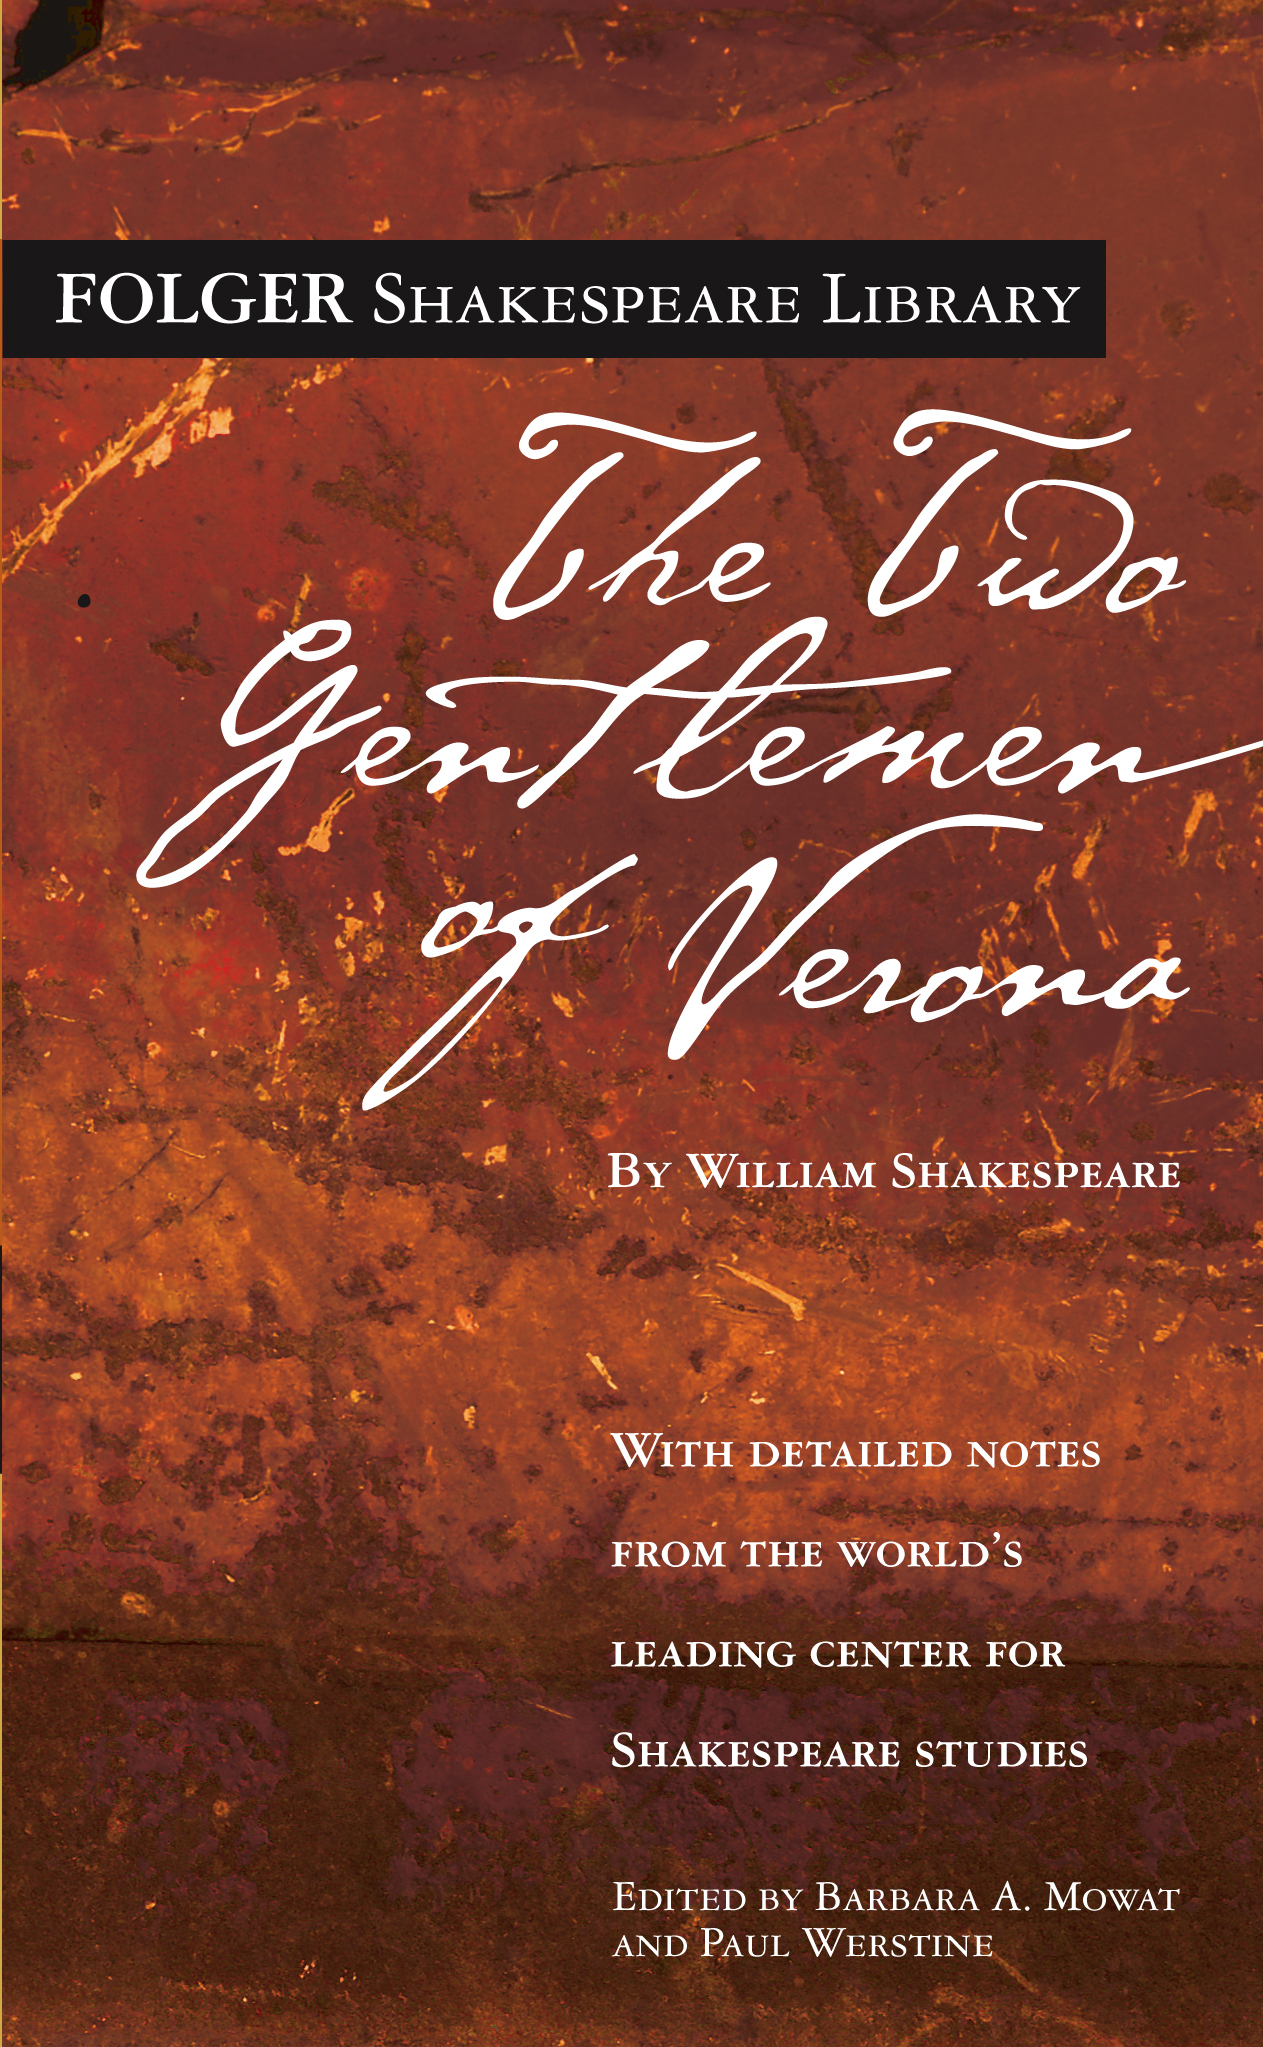 shakespeares two gentlemen William shakespeare's the two gentlemen of verona will be presented in 2014 on osf's outddor elizabethan stage this all-female production is directed by sarah rasmussen.